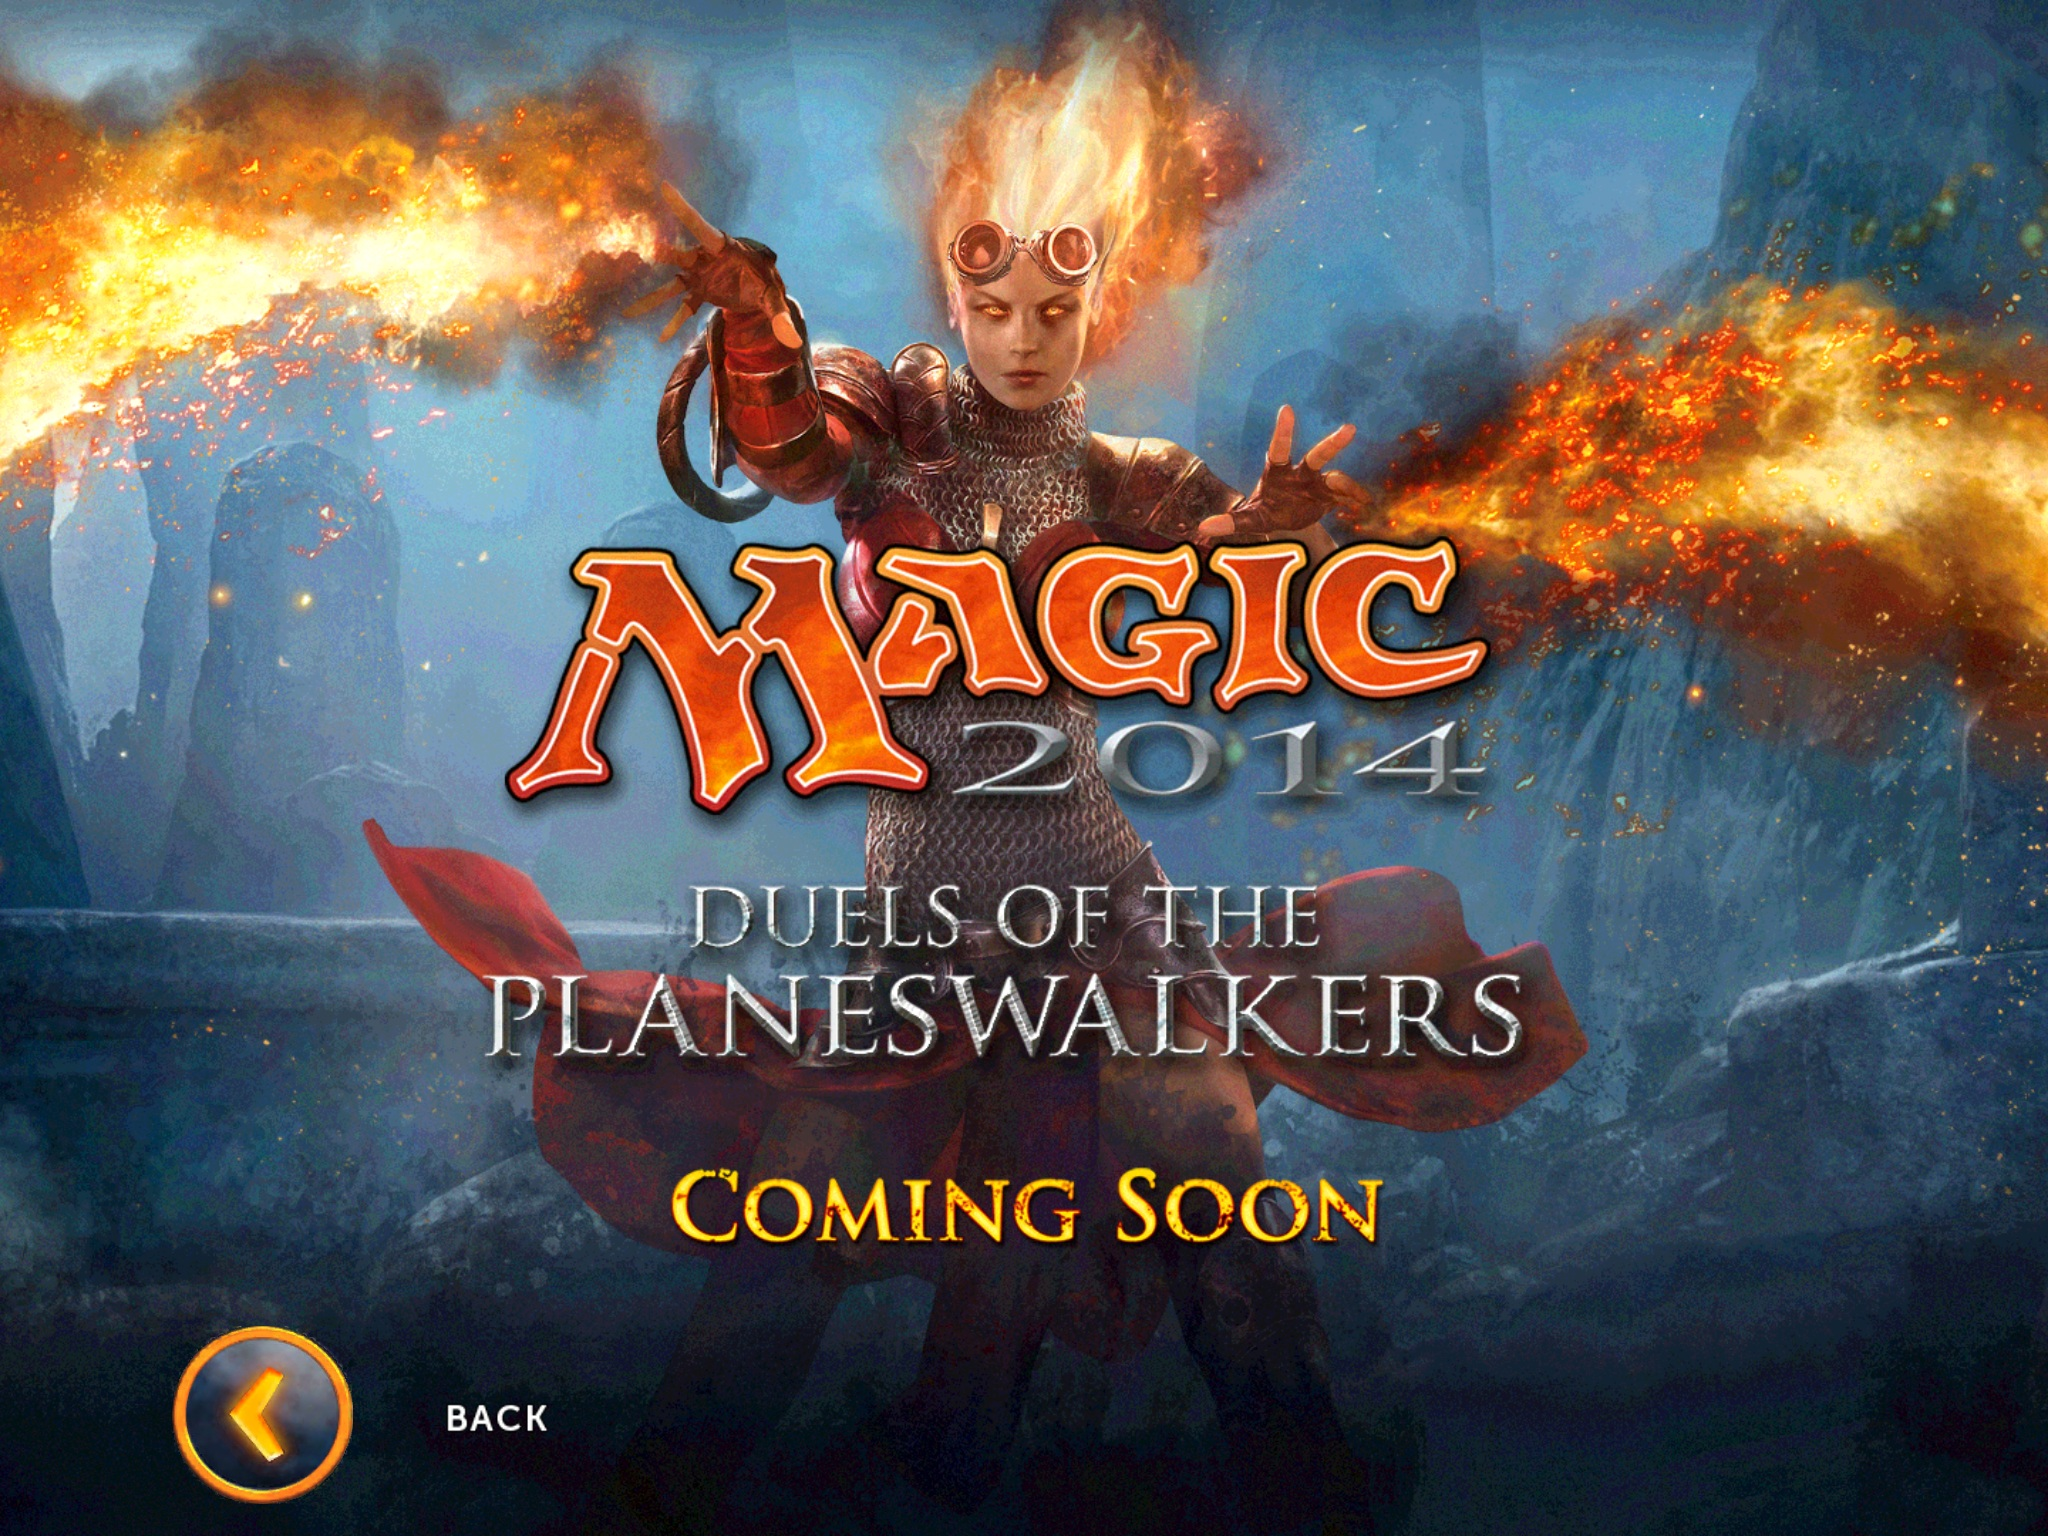 Magic 2014 for iPad and Android updated with 2 new decks